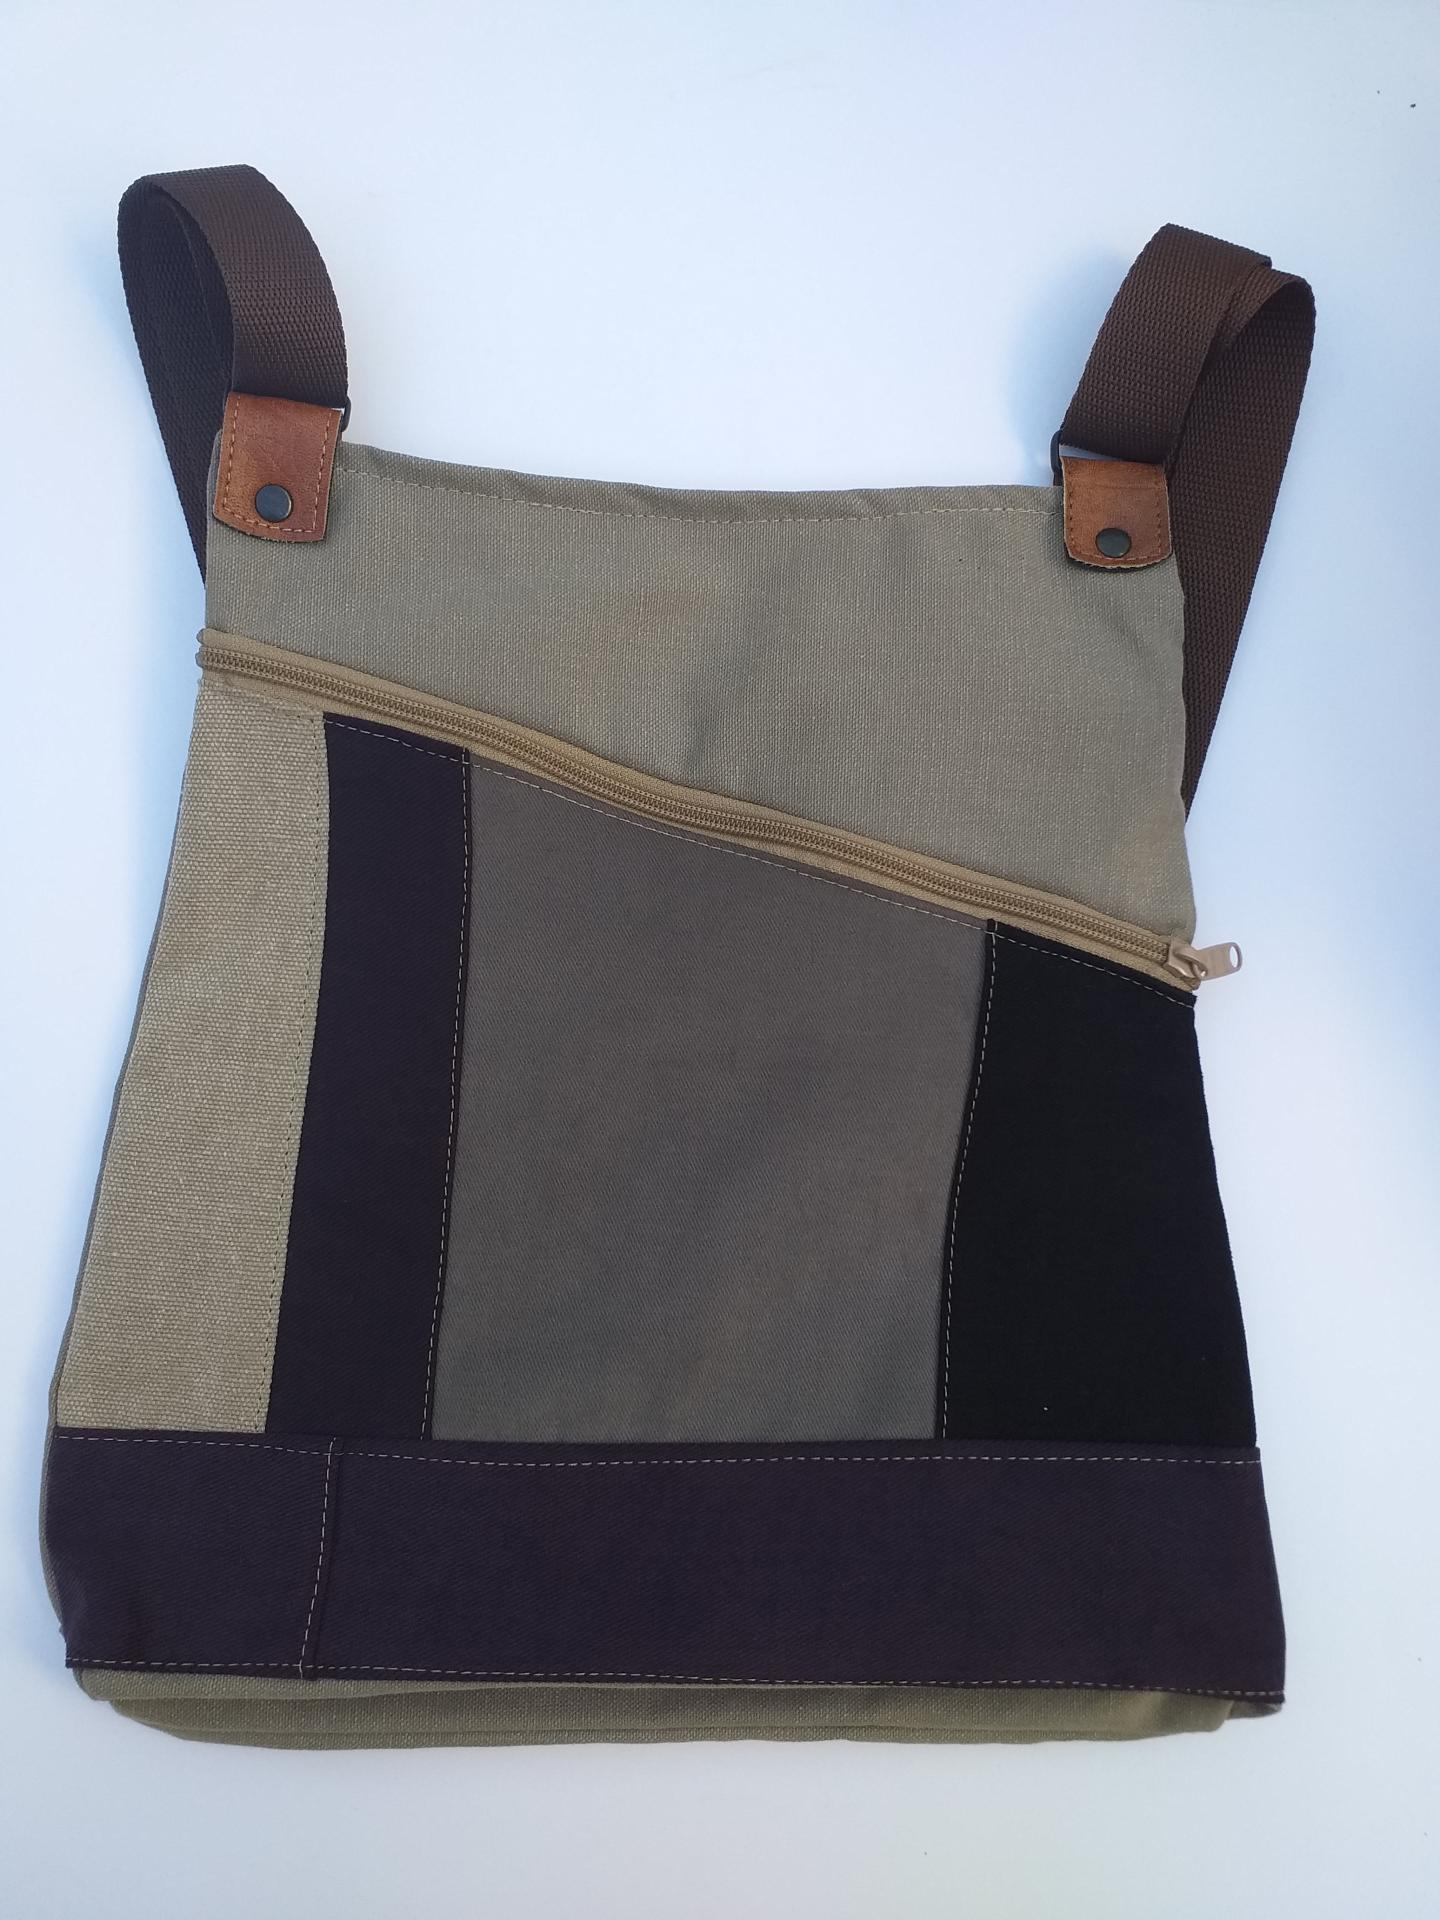 BACKPACK TRIANGULO GRAY and PURPLE